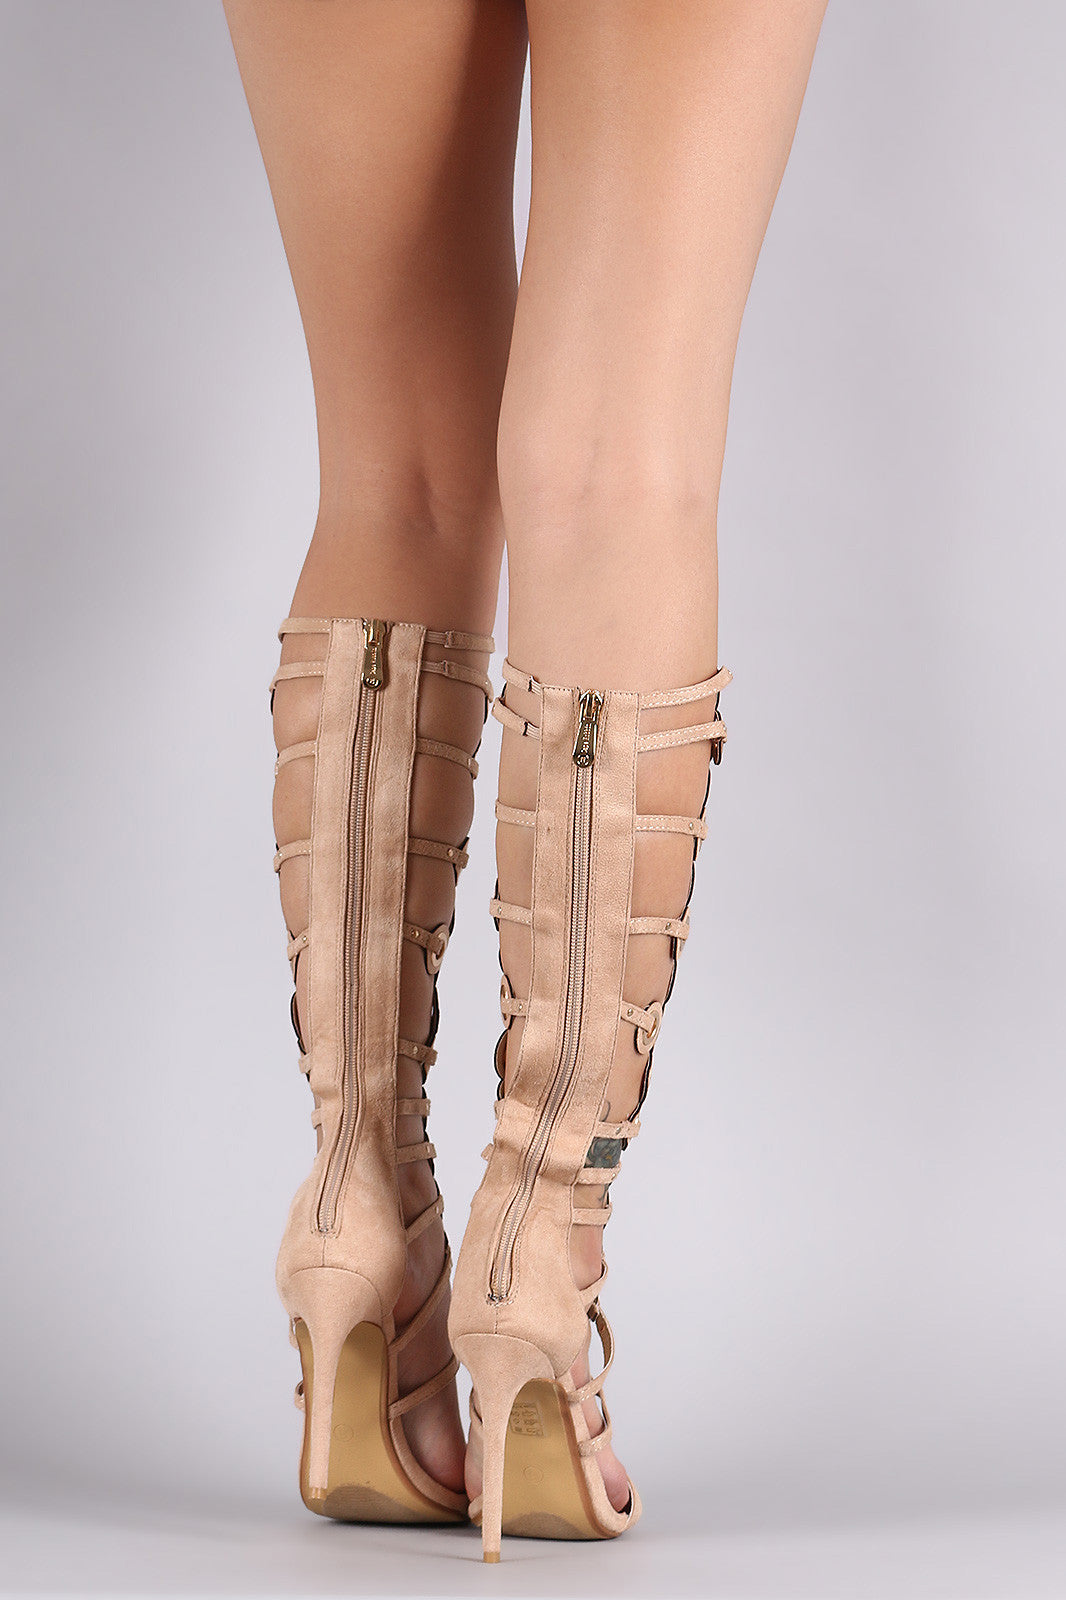 Suede Grommets Embellished Strappy Gladiator Heel - Thick 'N' Curvy Shop - 12